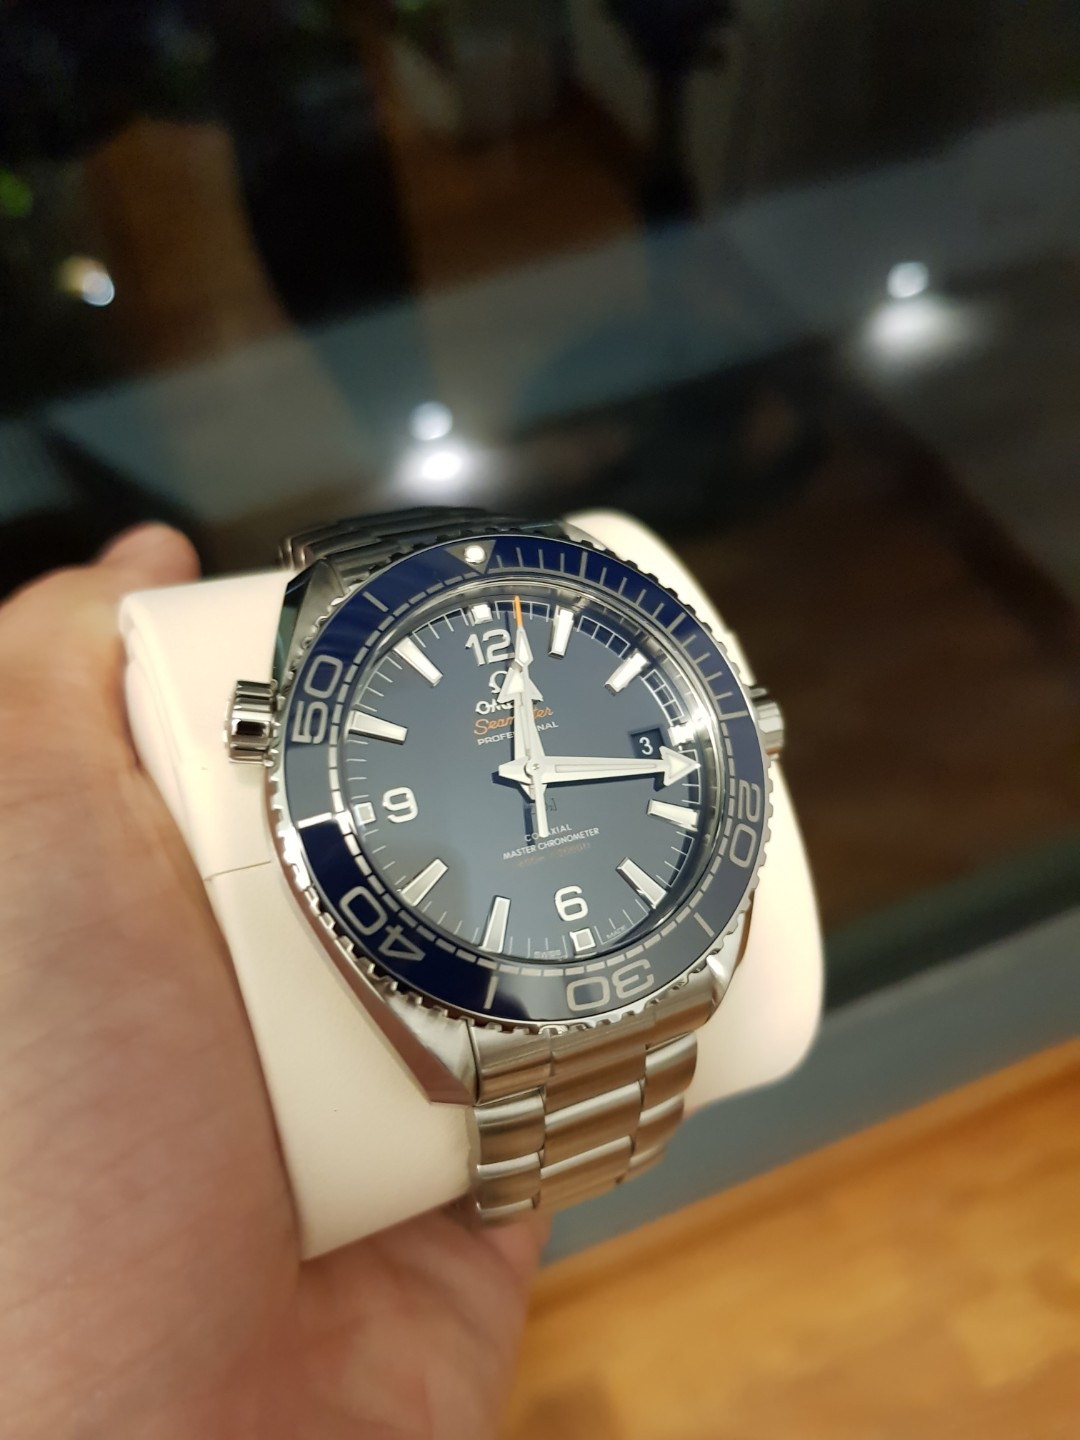 a10929c2c4e6b3 Lowest Price!! Brand New In Box Omega Seamaster Planet Ocean 600m ...